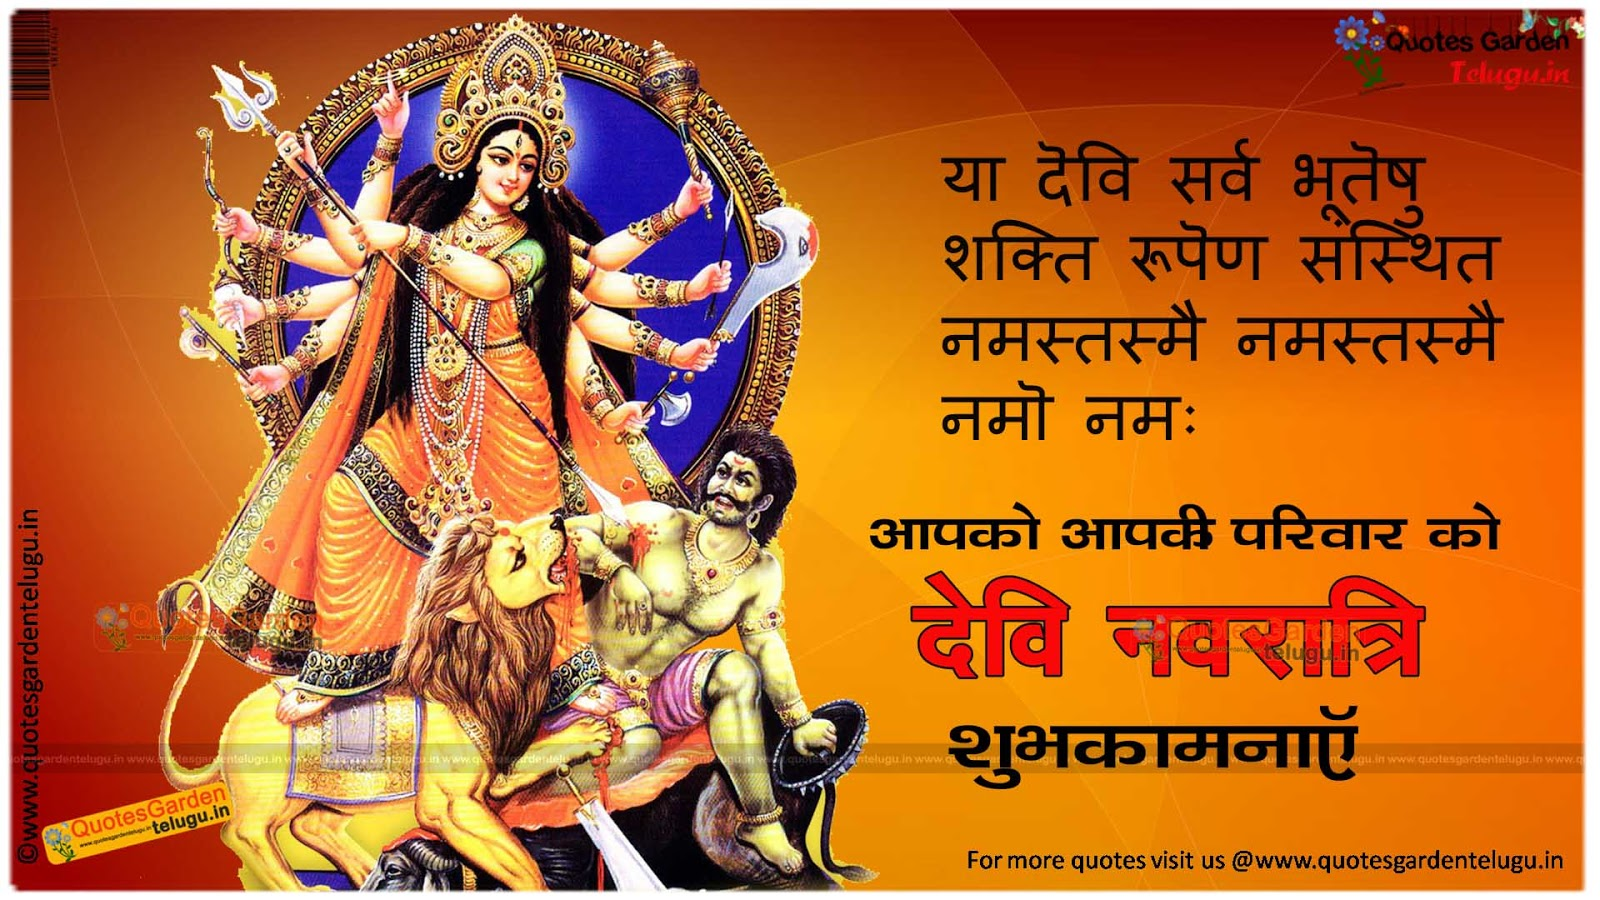 Happy durga puja navratri 2016 wishes message poems images hd happy2bdurga2bpuja2bnavratri2b20162bwishes2bmessage2bpoems kristyandbryce Choice Image